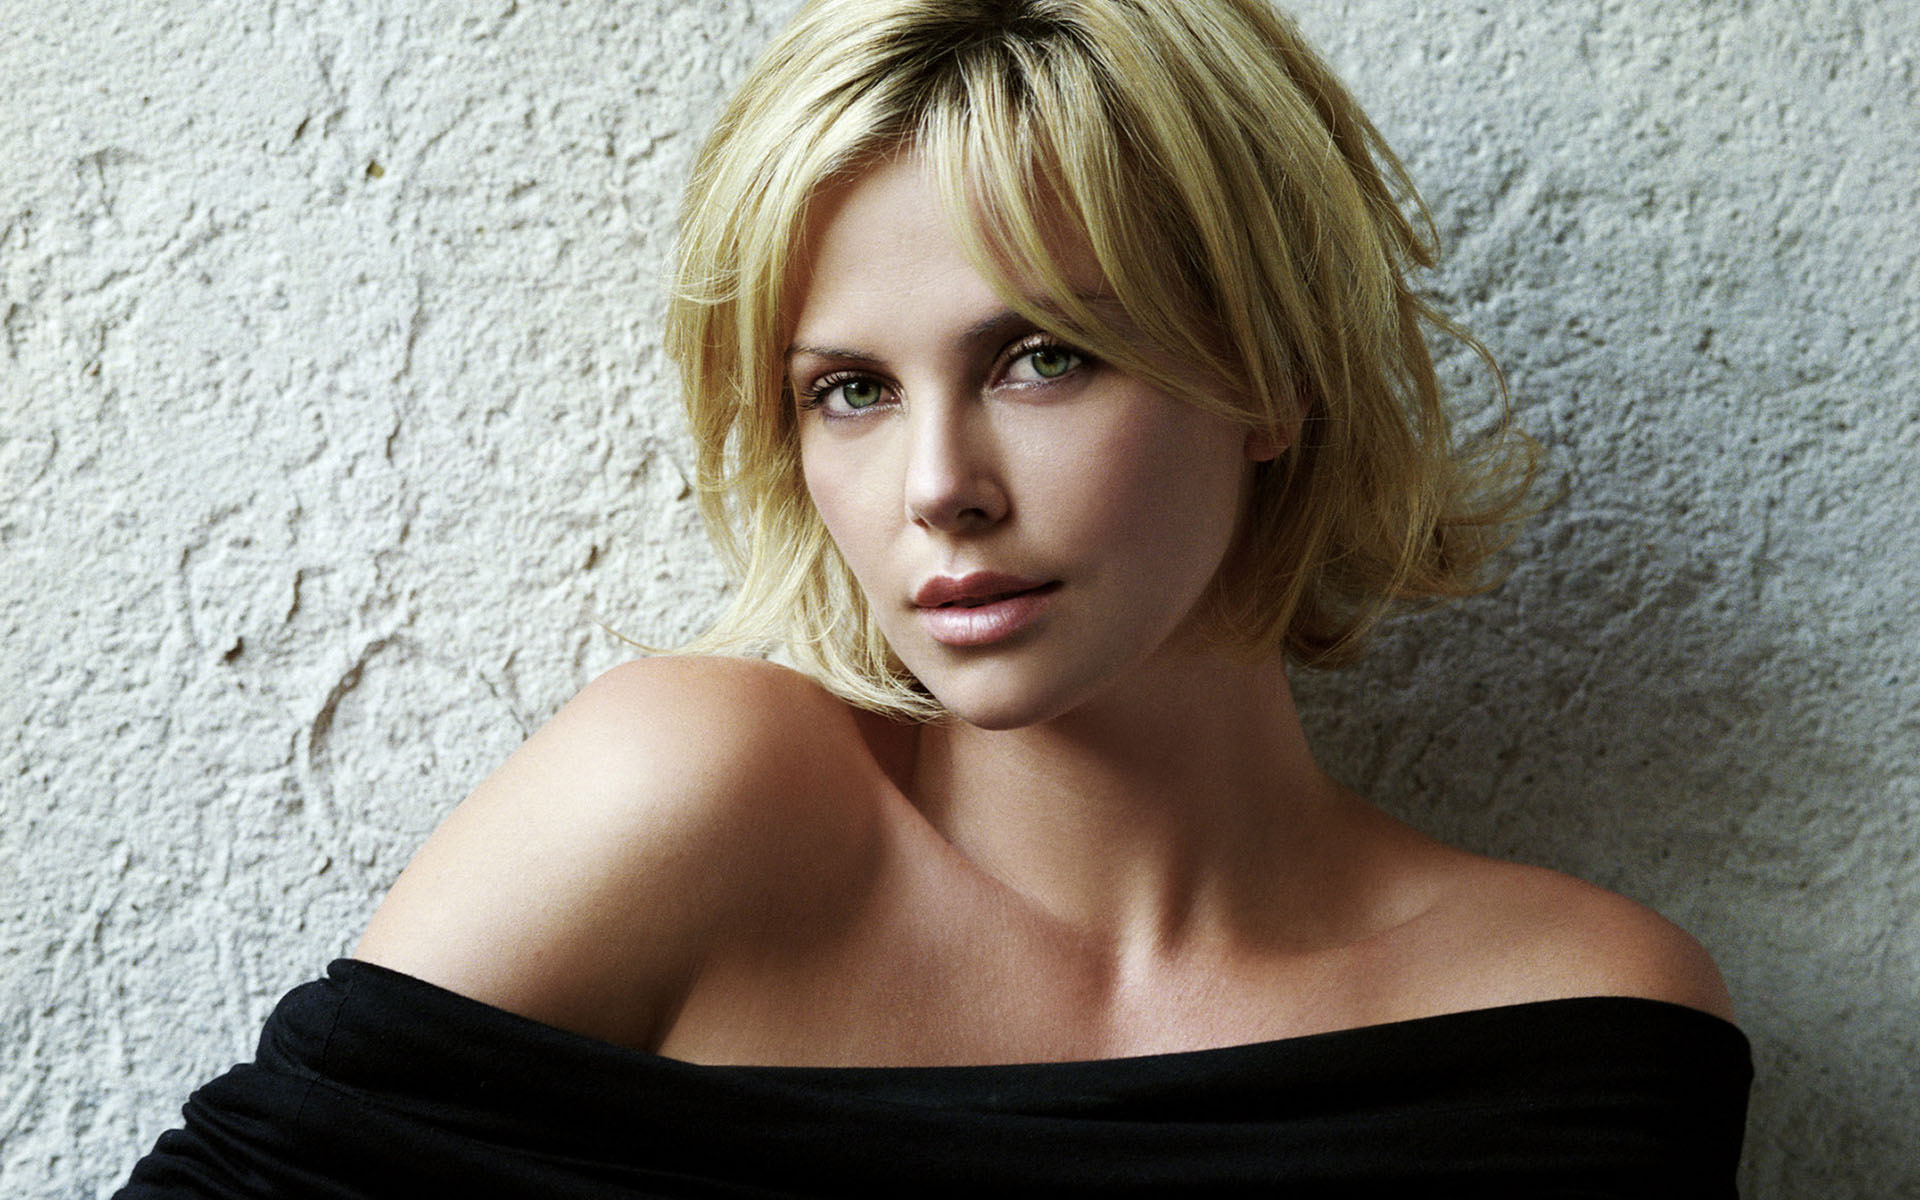 charlize theron wallpaper 17846